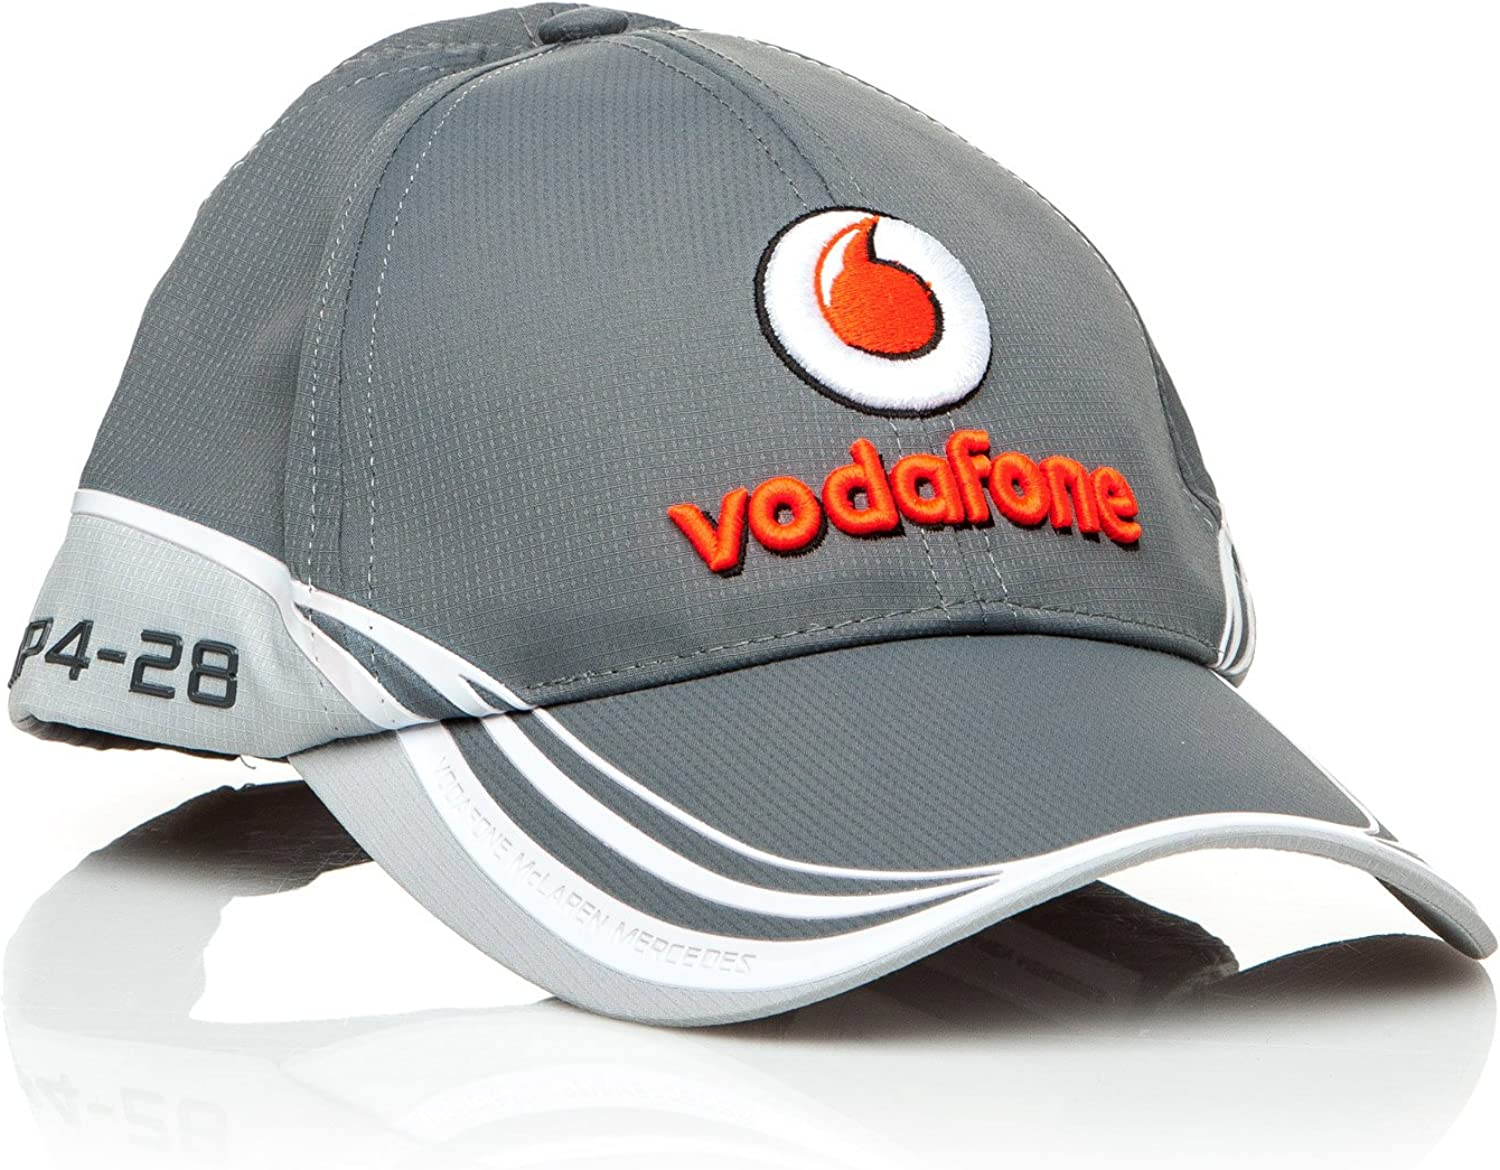 / One Size McLaren Original 2010 Vodafone Mercedes Team Casquette/